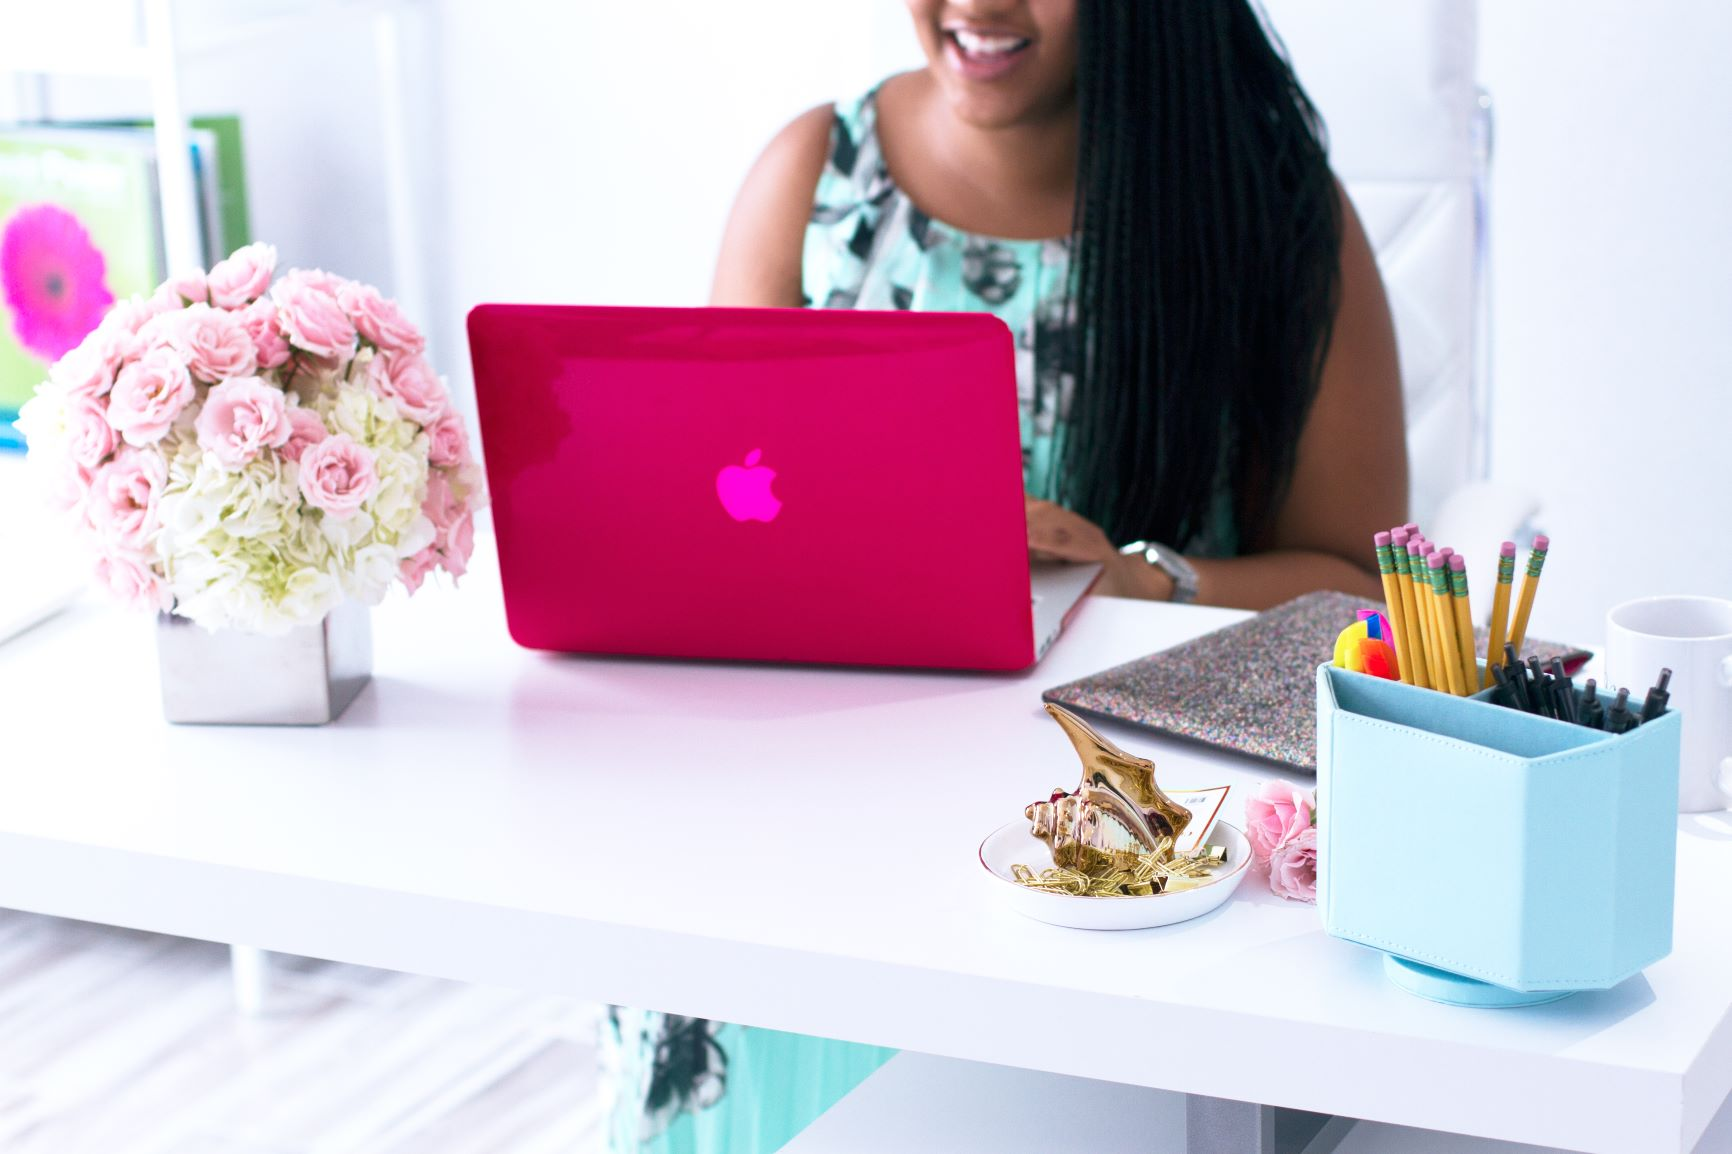 How to prepare your wedding business for 2019 booking and wedding season